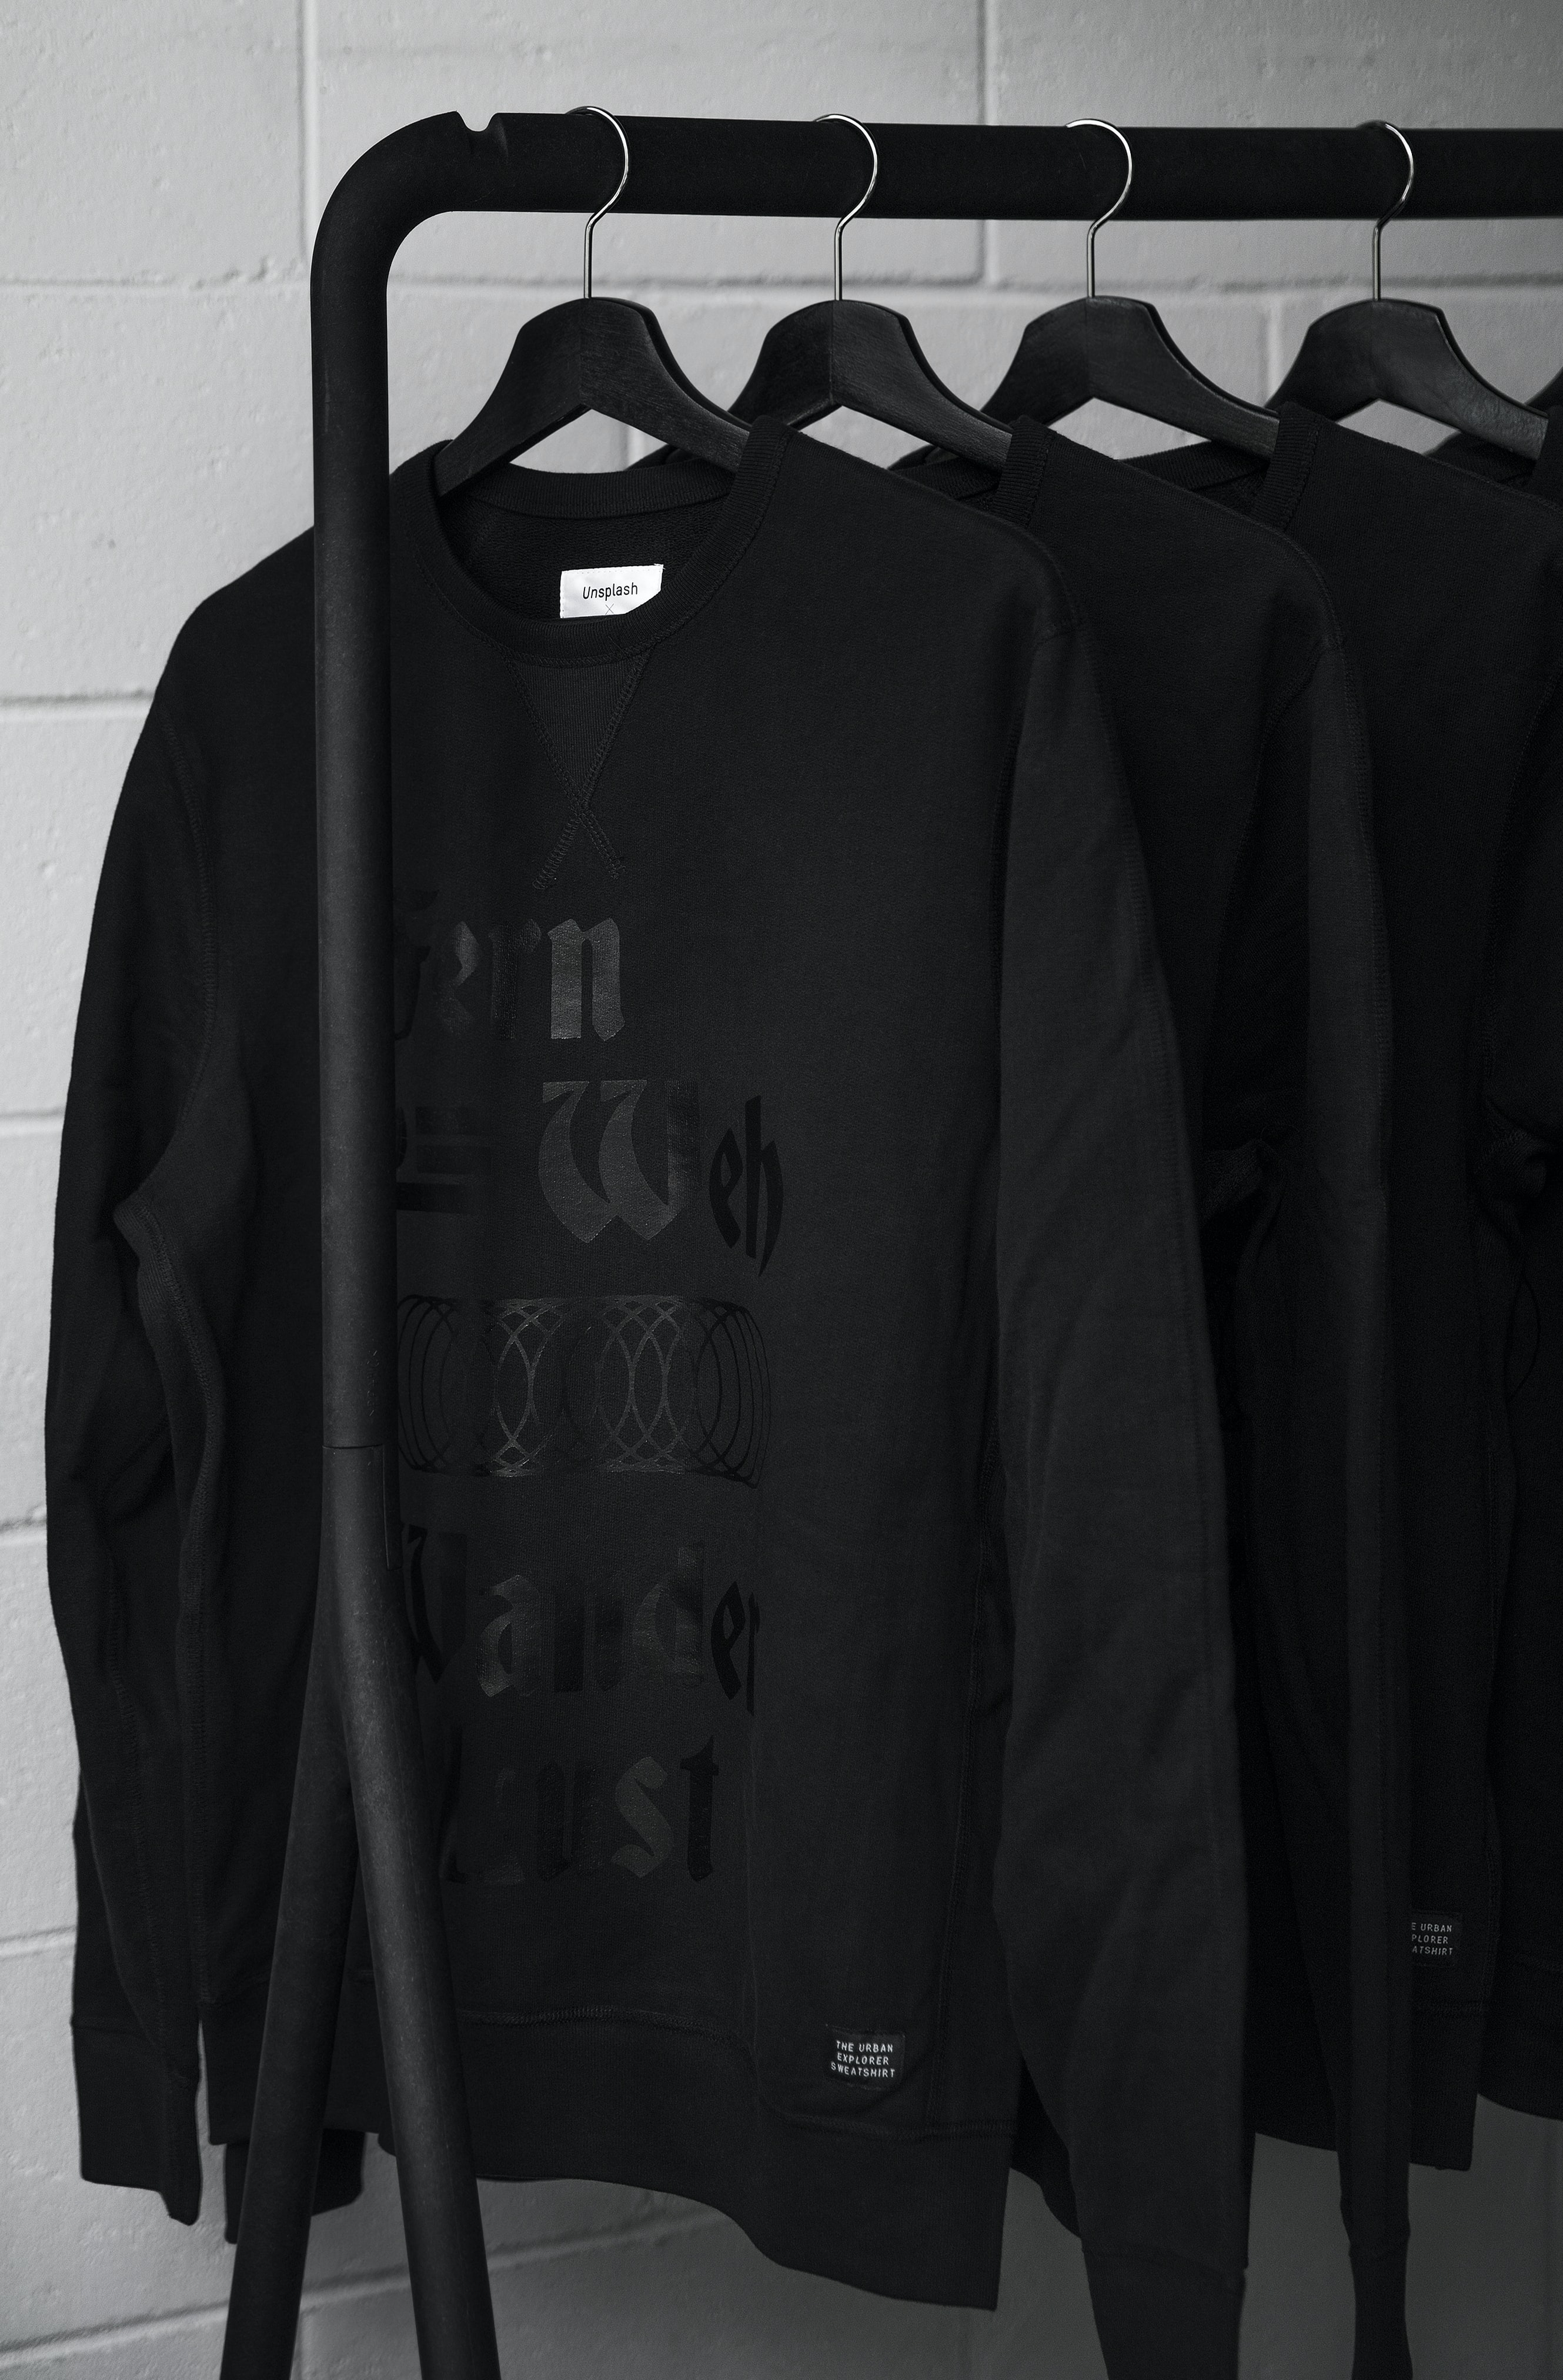 black sweatshirts on plastic hangers